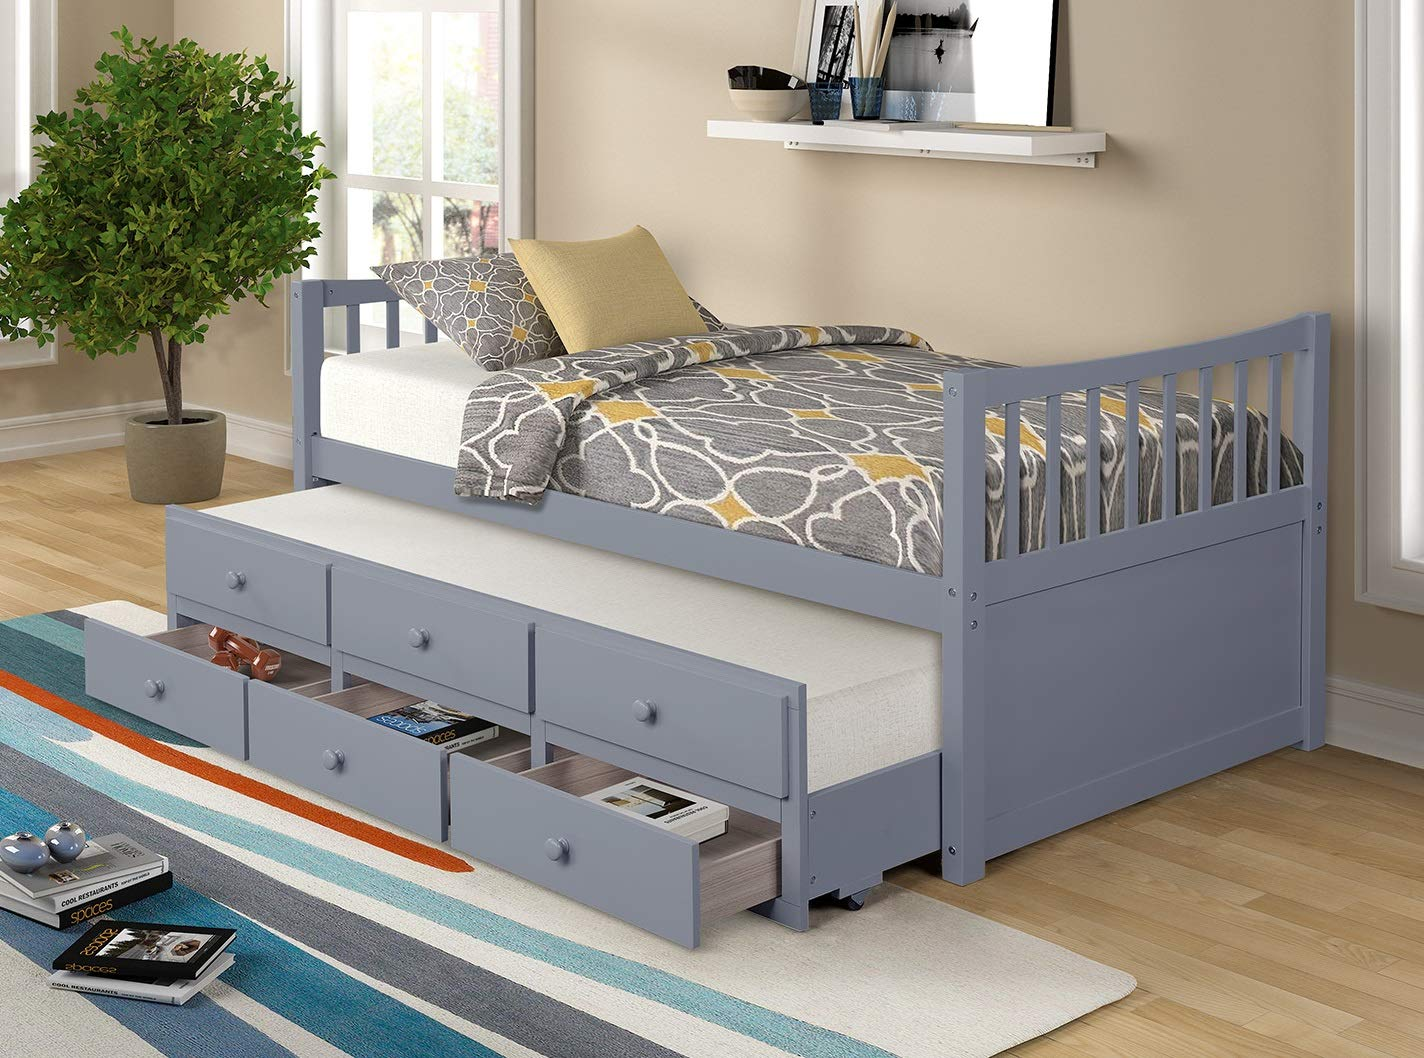 Captains Storage daybed Trundle Drawers